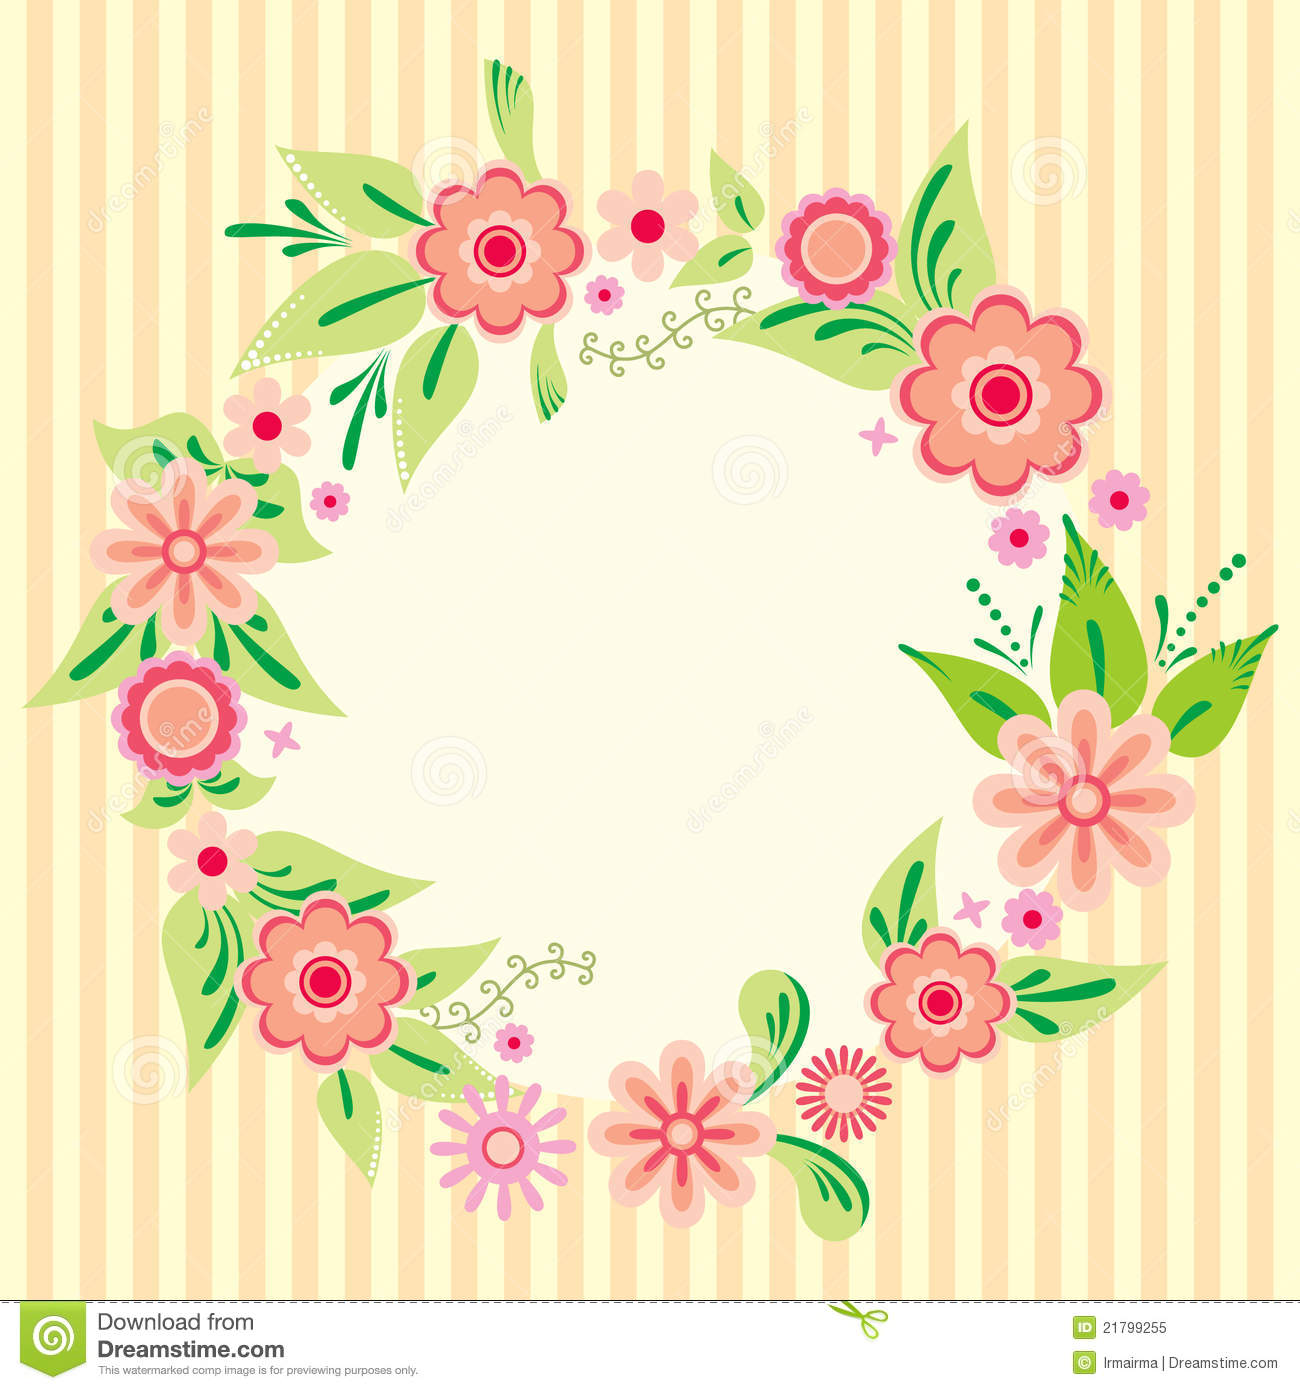 Flower Card Stock Vector. Illustration Of Garland, Natural